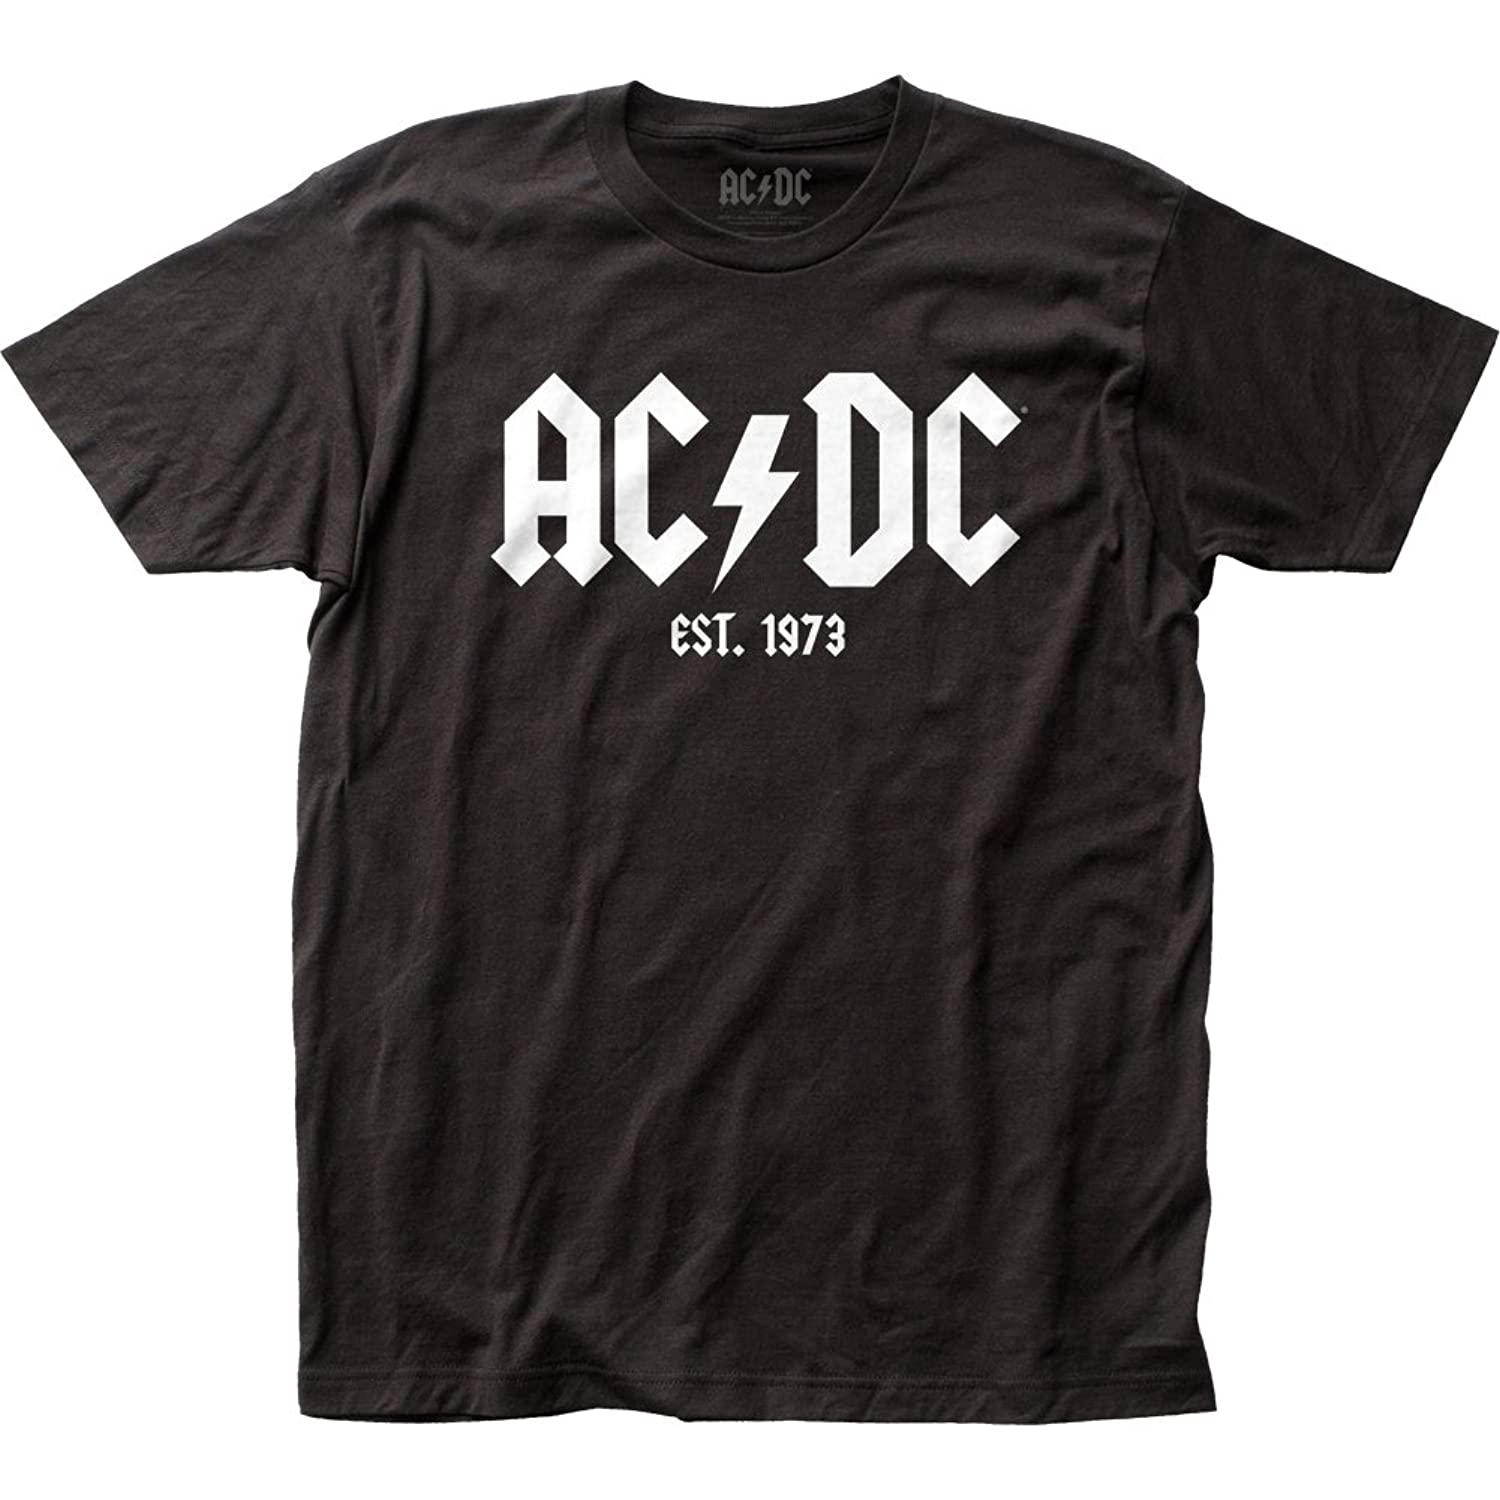 AC/DC Est. 1973 Rock Band Music Group Logo Adult Fitted Jersey T-Shirt Tee